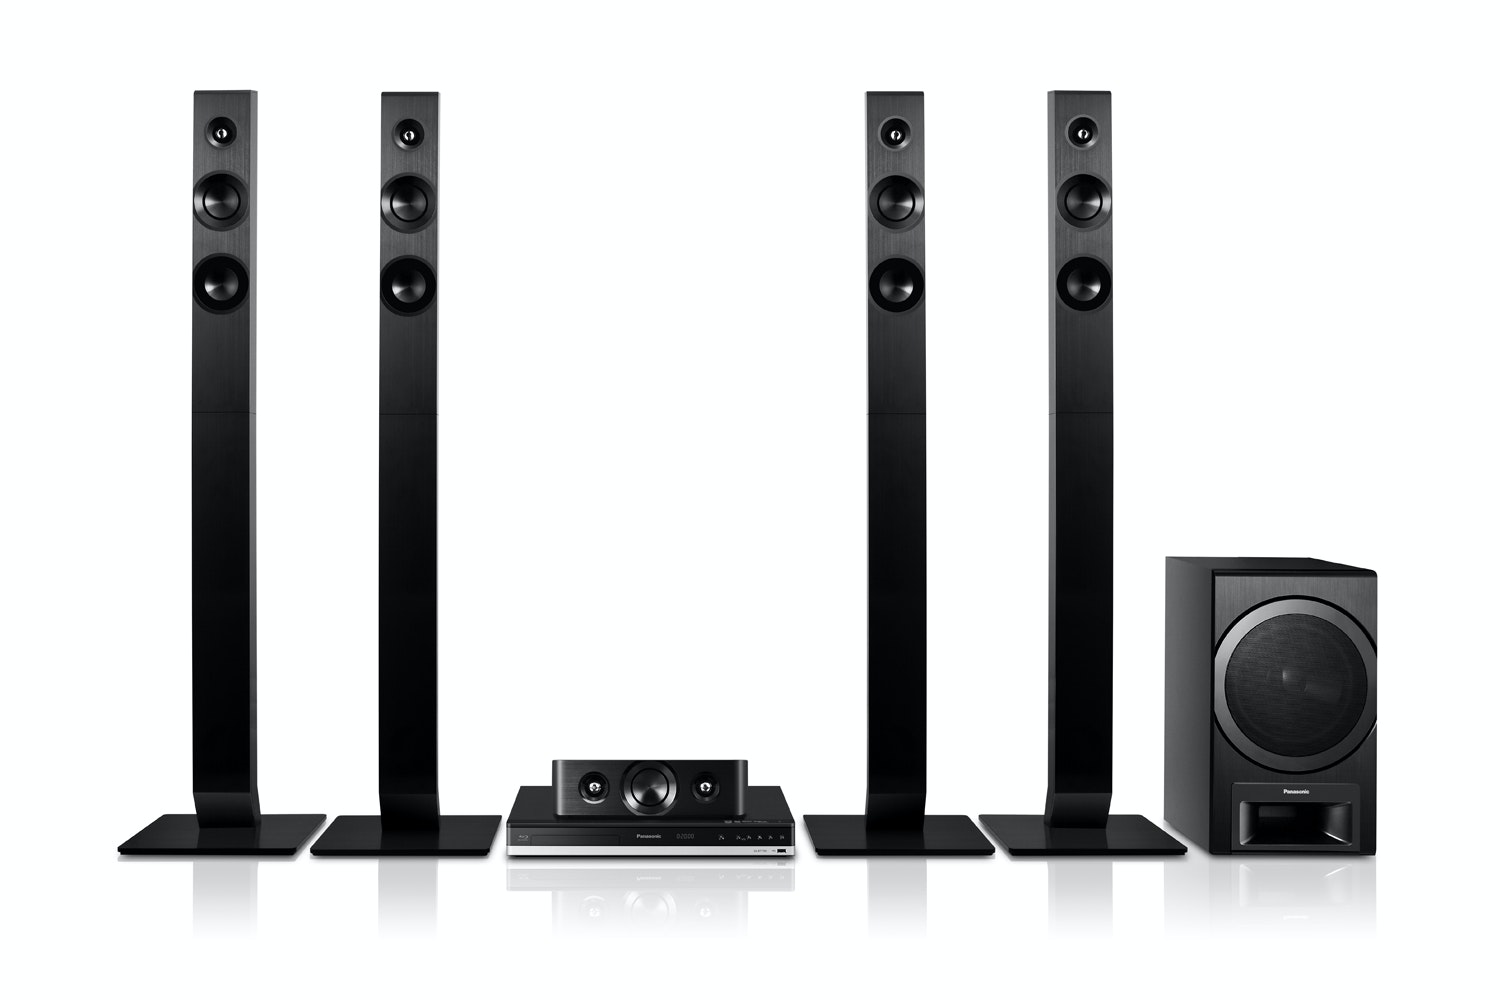 panasonic 5 1 channel 3d blu ray home theatre system harvey norman home  theater system price list home theater system